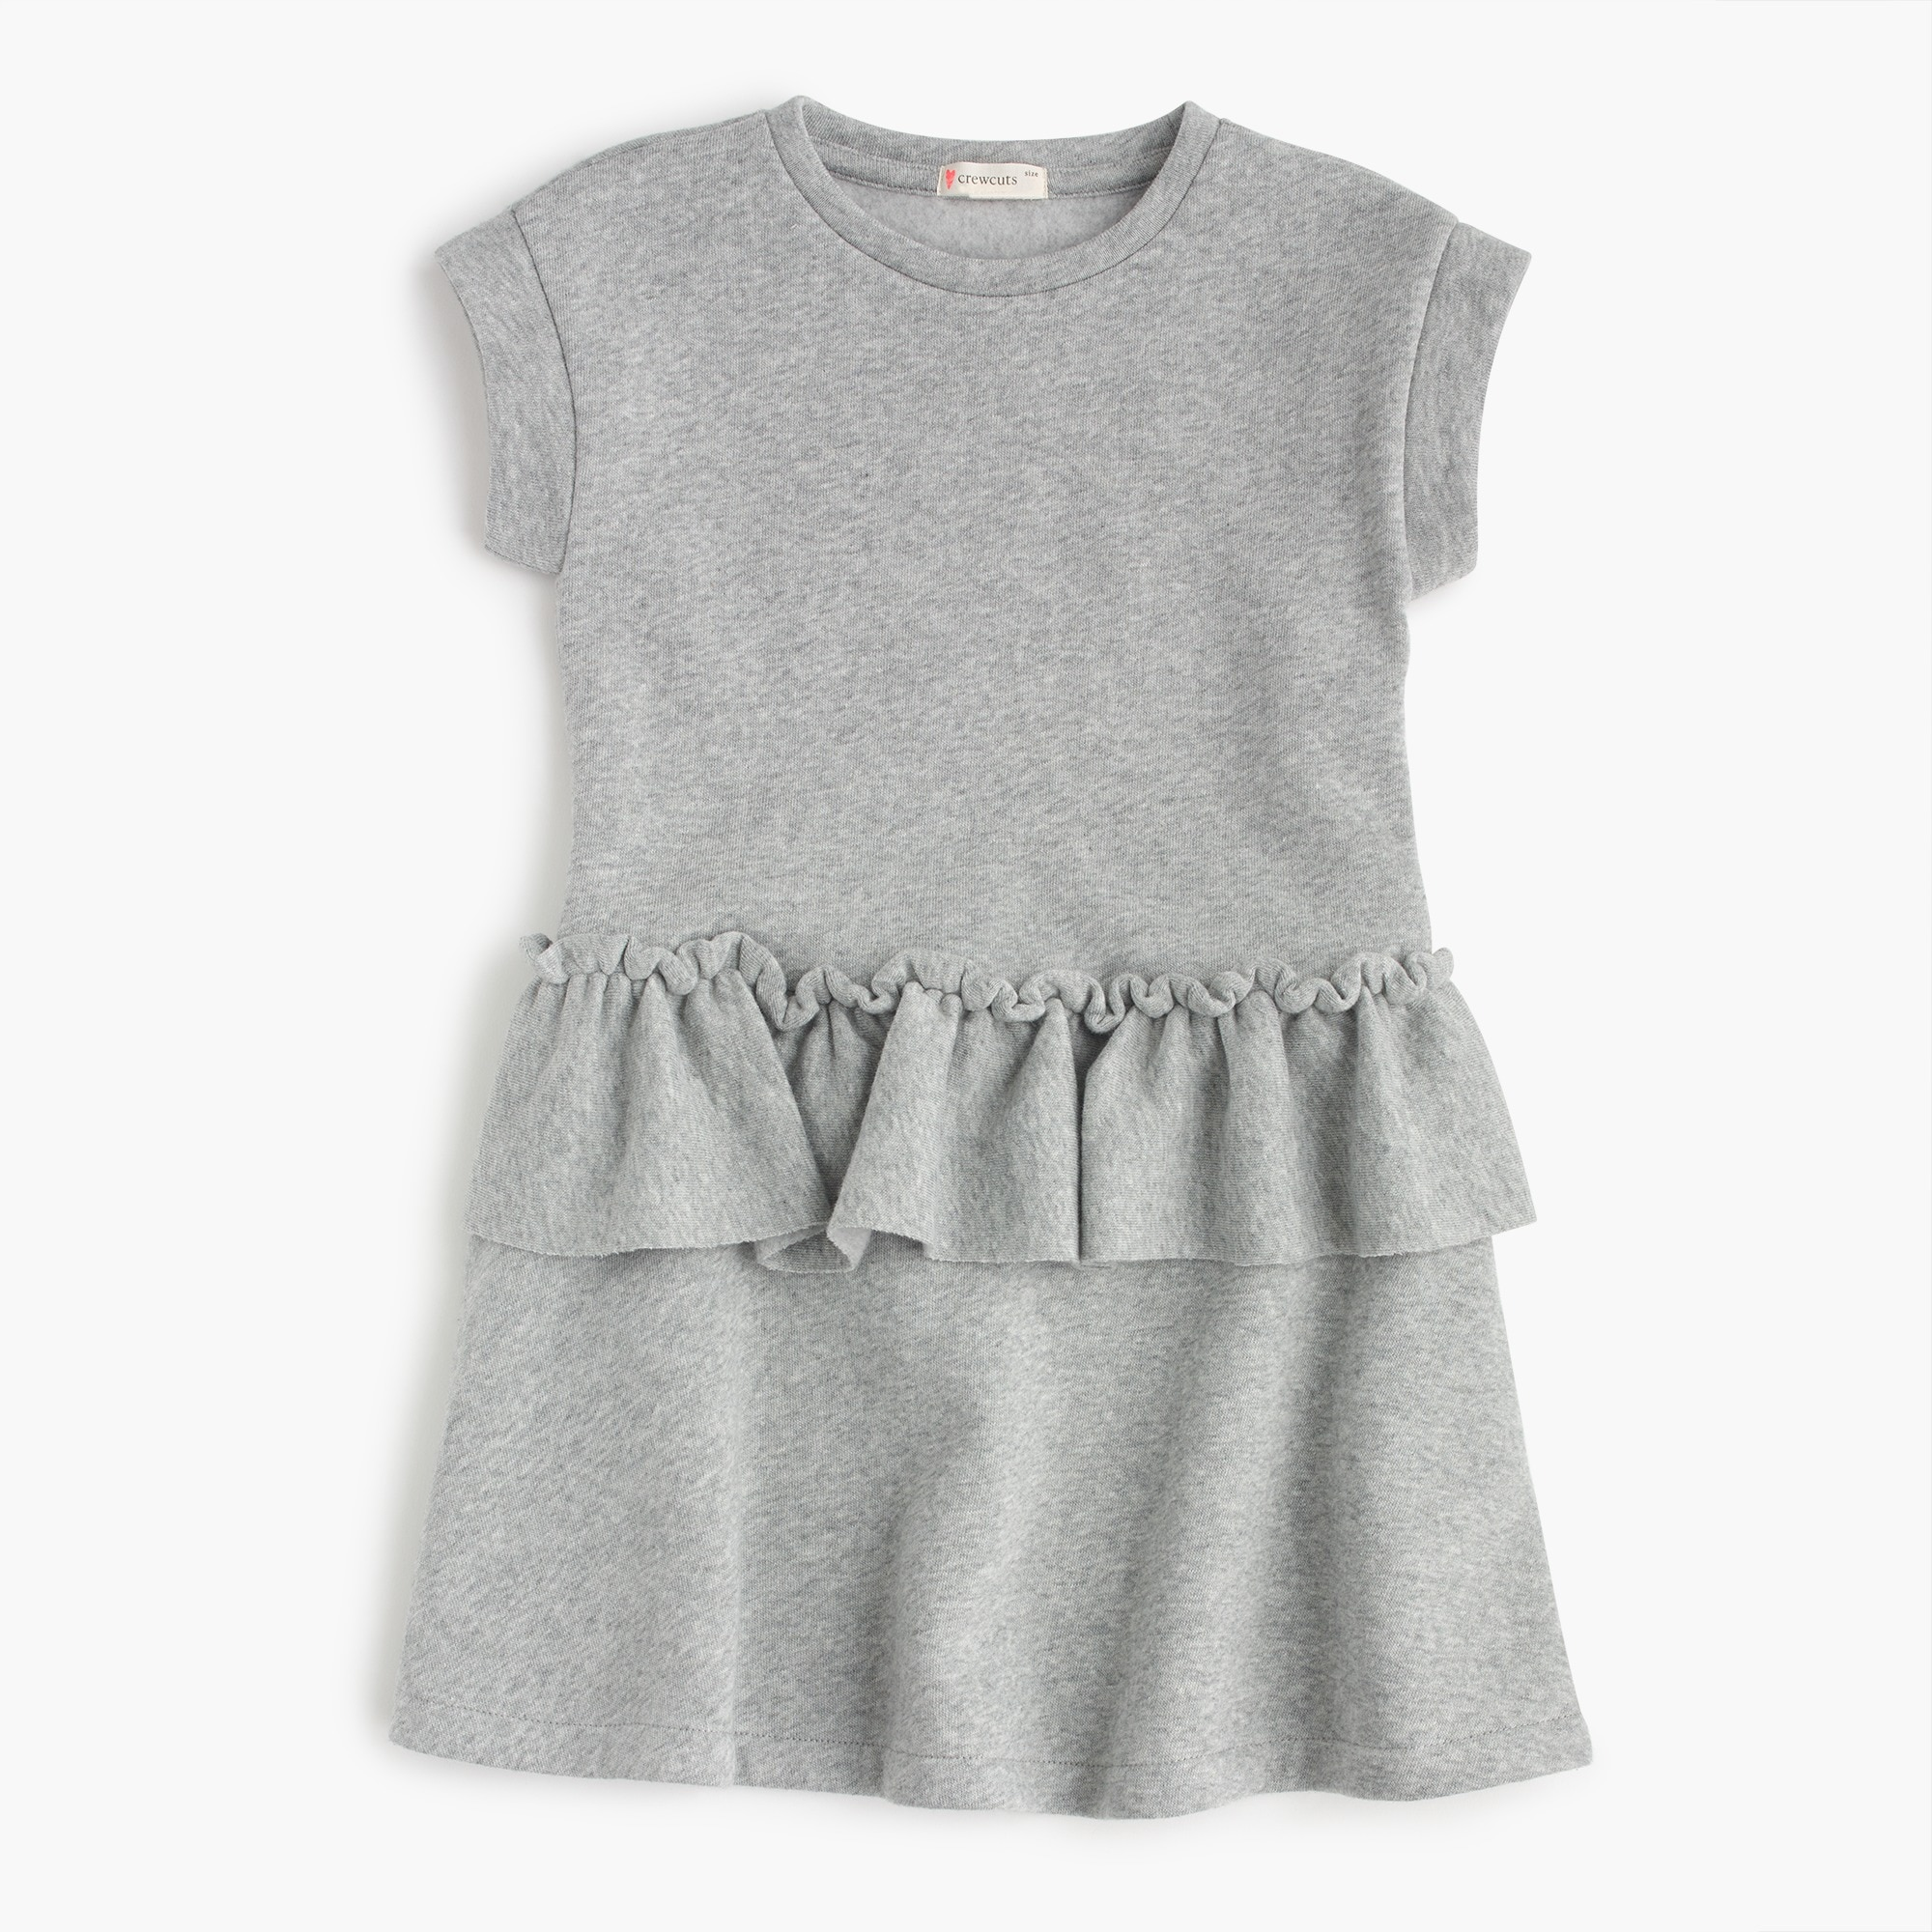 Girls' ruffle-trimmed short-sleeve dress girl new arrivals c